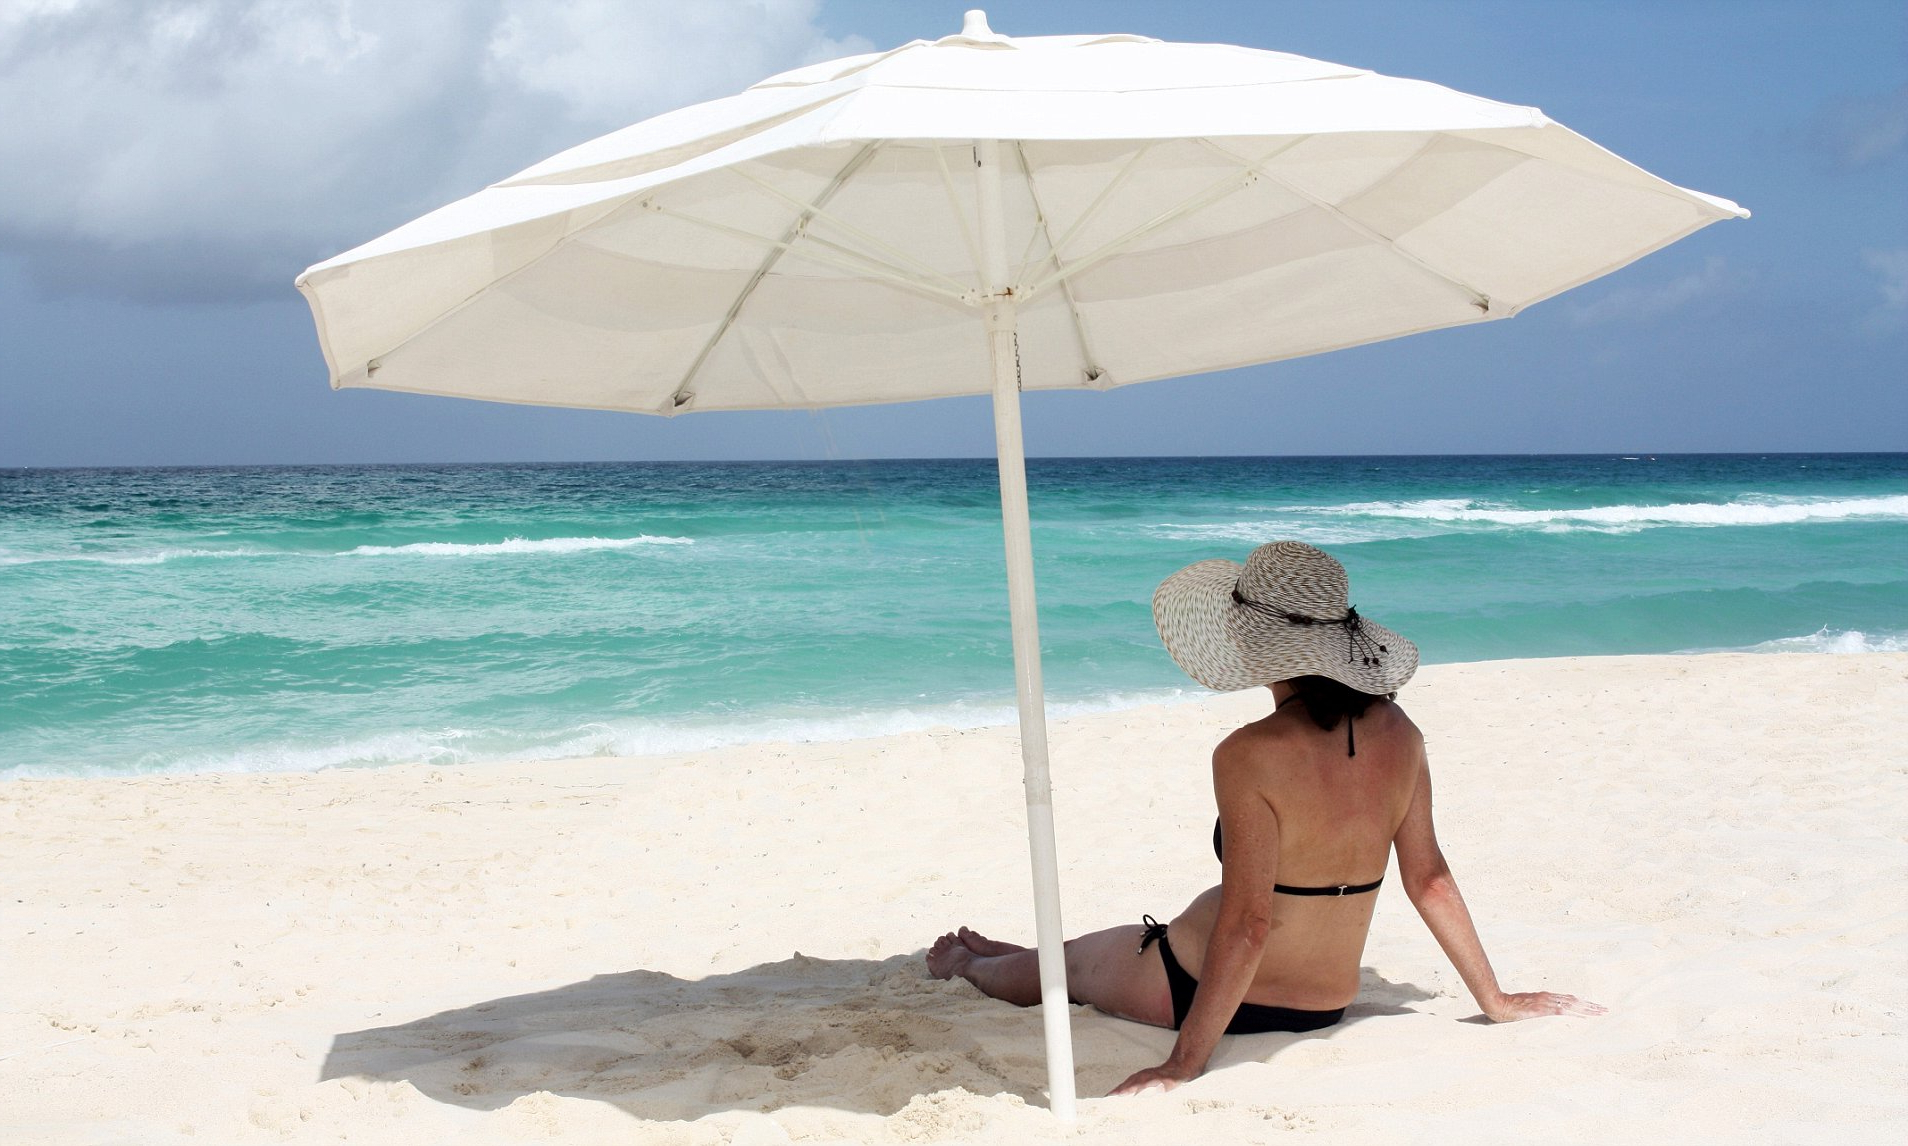 Most Current Sitting Under Parasol Doesn't Protect From Sunburn (View 10 of 20)